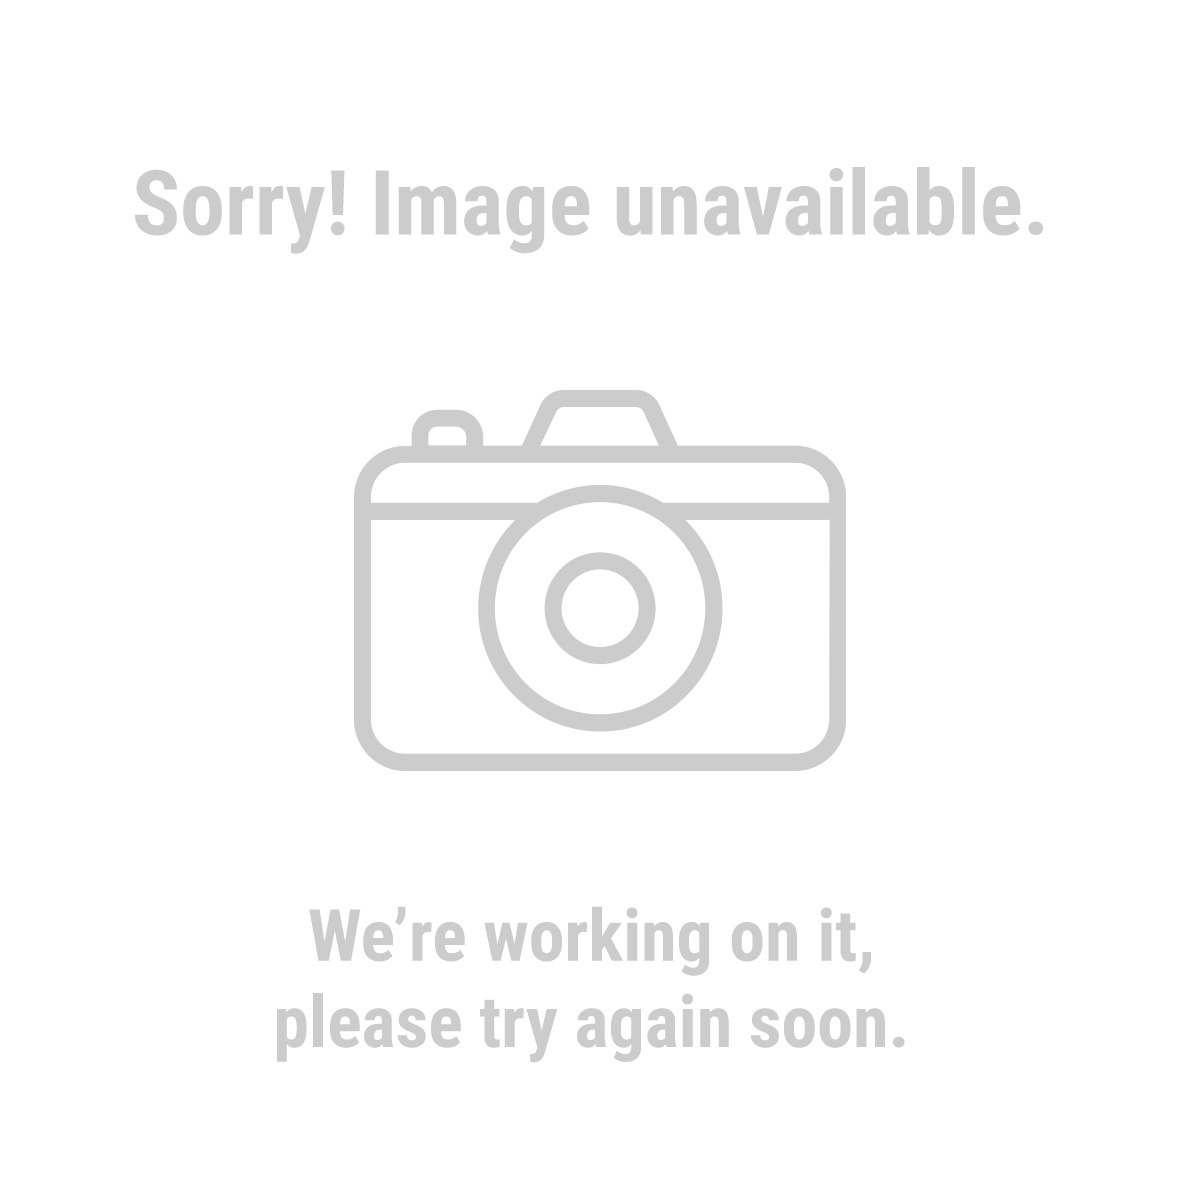 Cen-Tech 94181 Cable Tracker